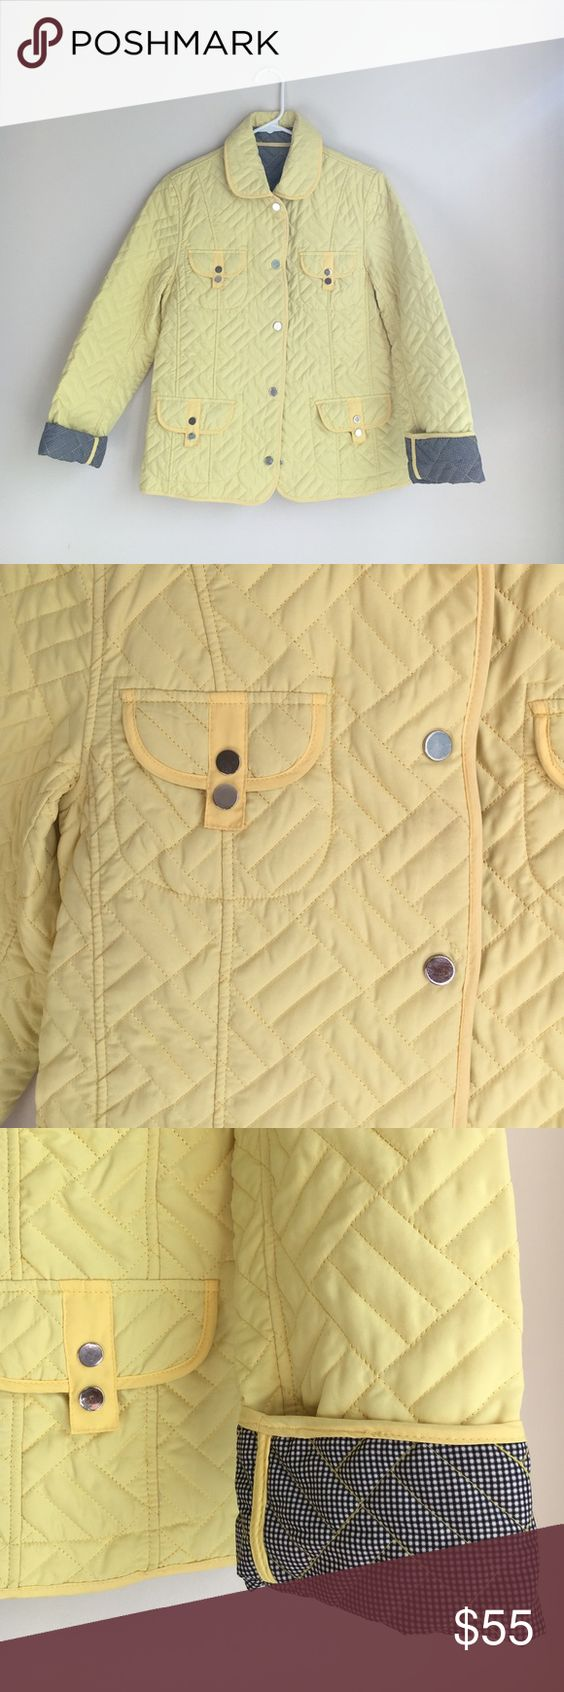 Marcona jacket Banana taffy yellow - pristine condition! marcona Jackets & Coats